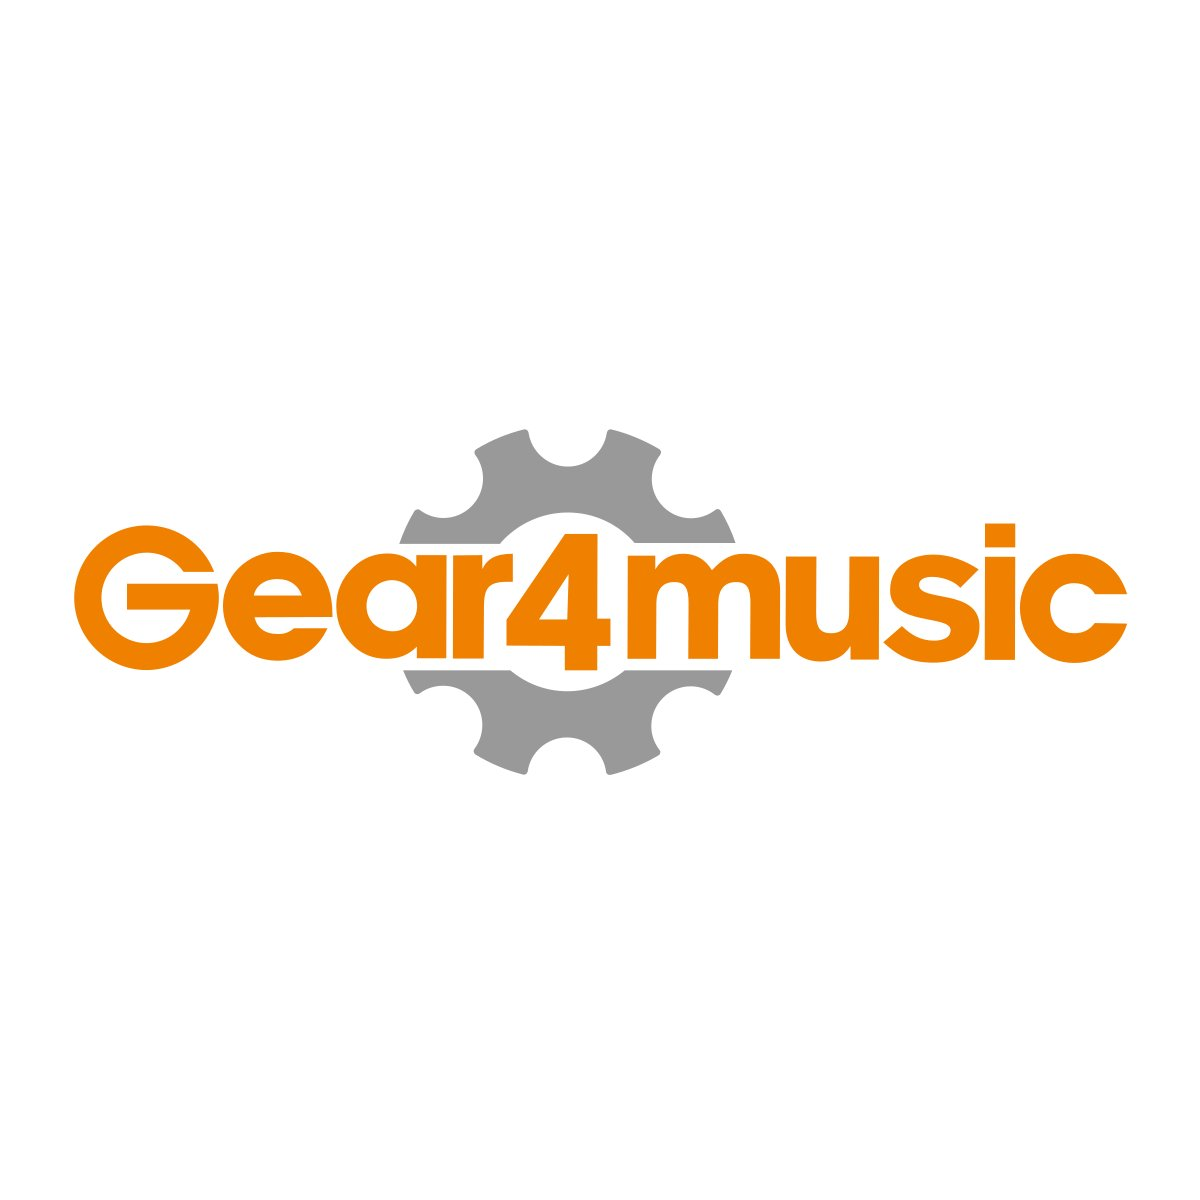 Atril Boom para Micrófono de Gear4music, Pack 3